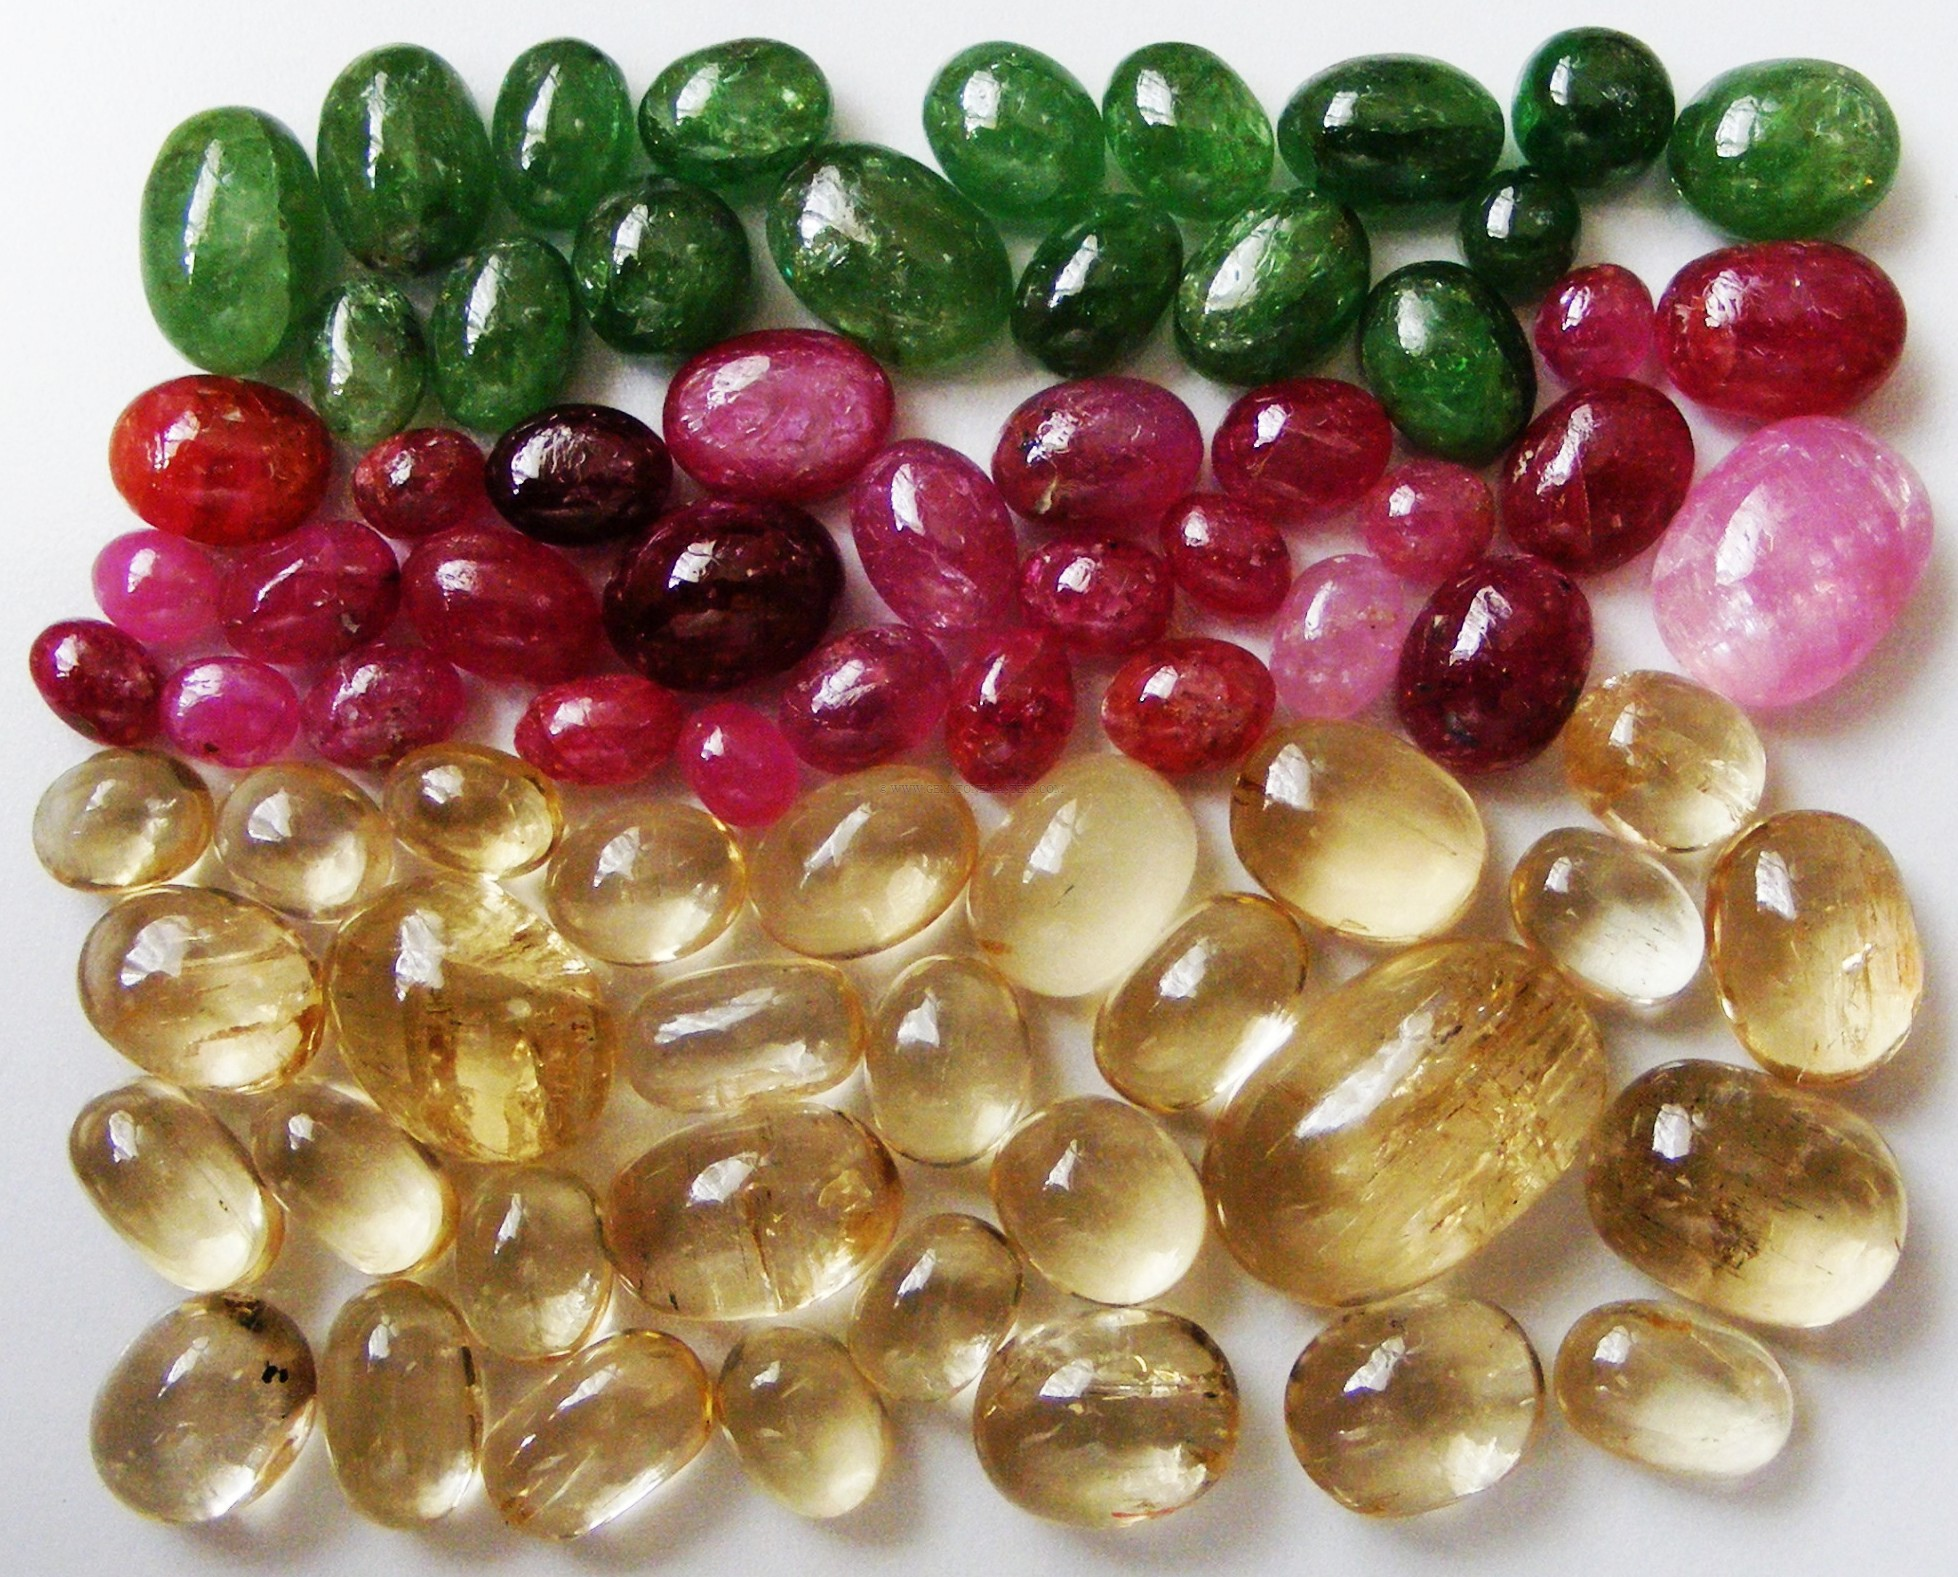 Gems Gemstone Bargain Wholesale Prices Gemstones From Source